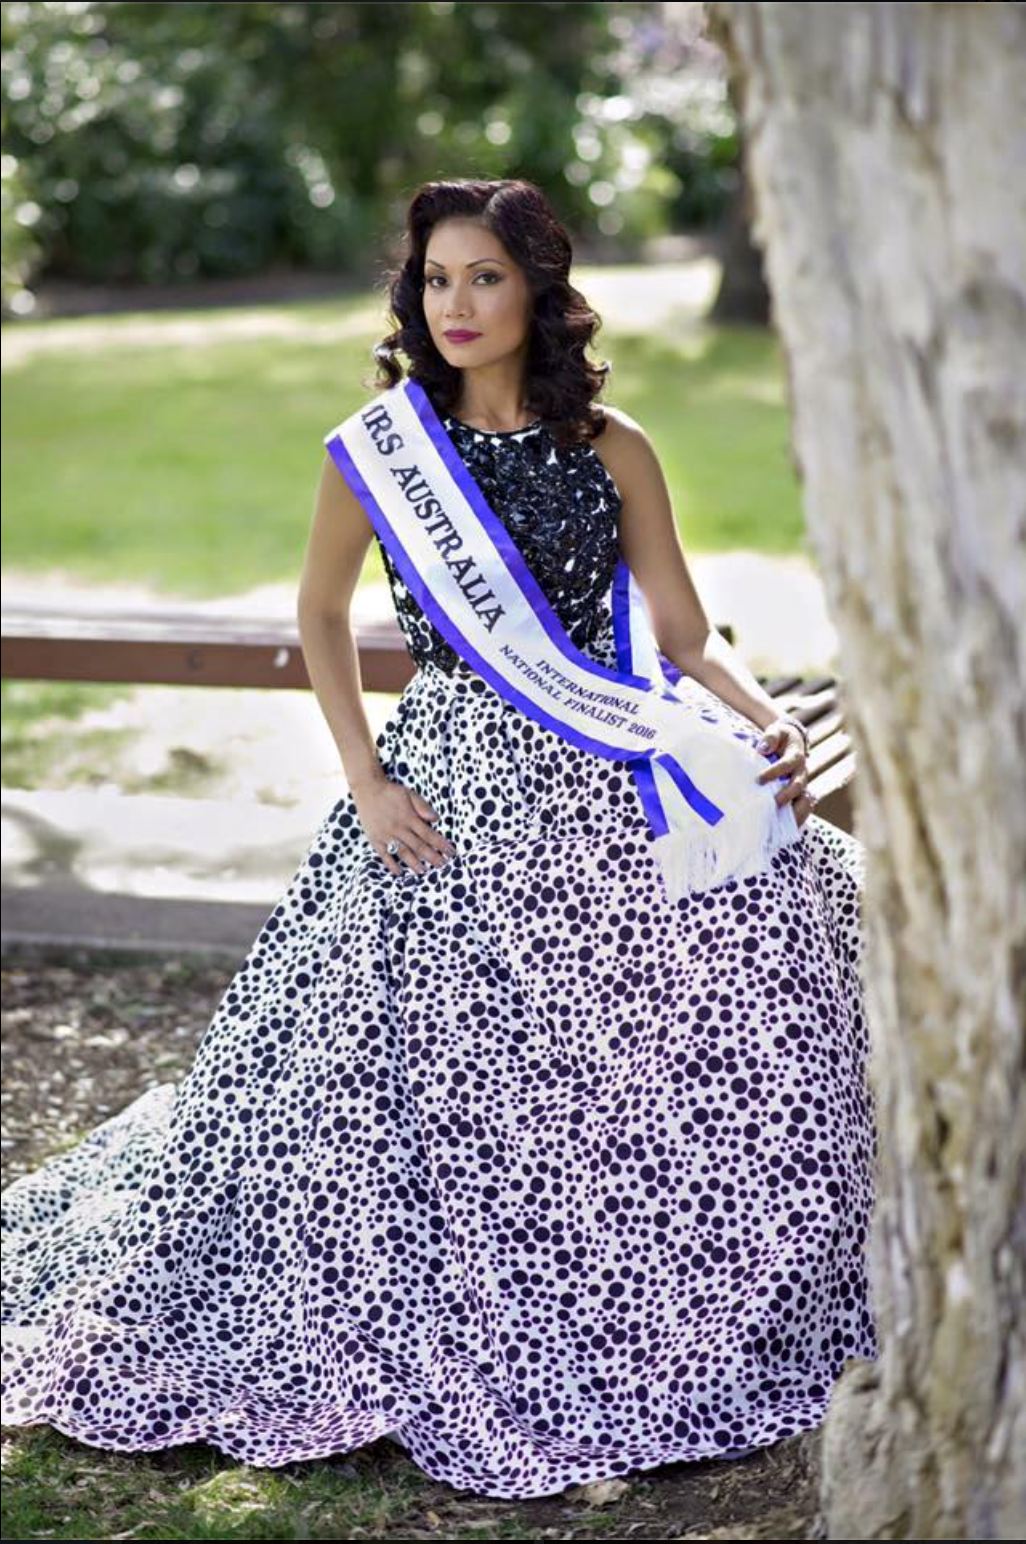 Mrs Australia International National Finalists 2016 Sophia Sarkis